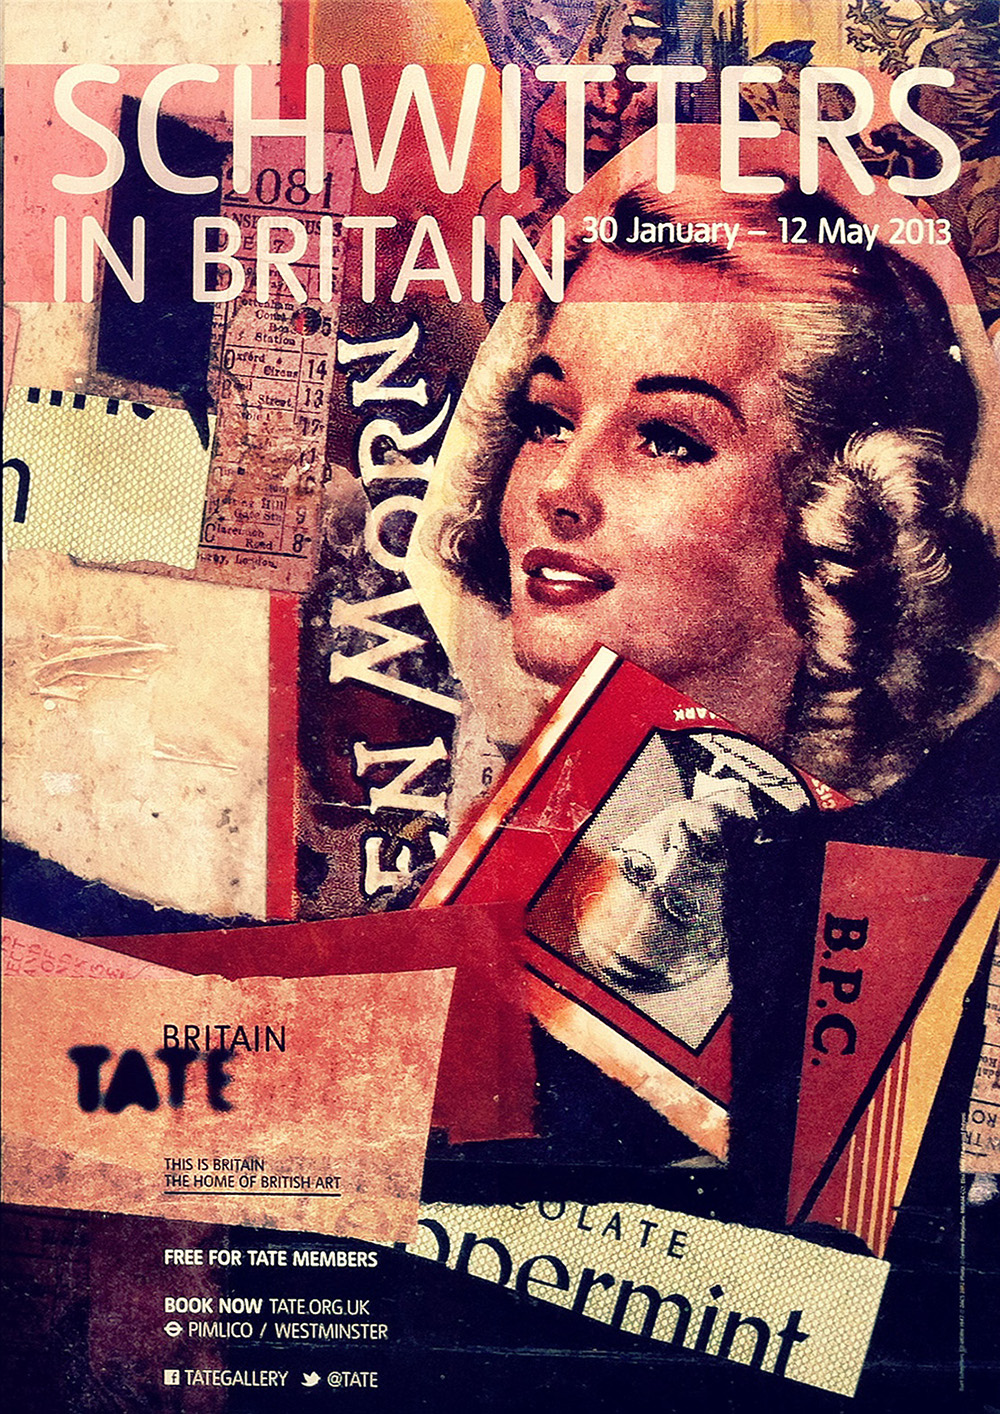 Schwitters in Tate Britain poster, a content brand.